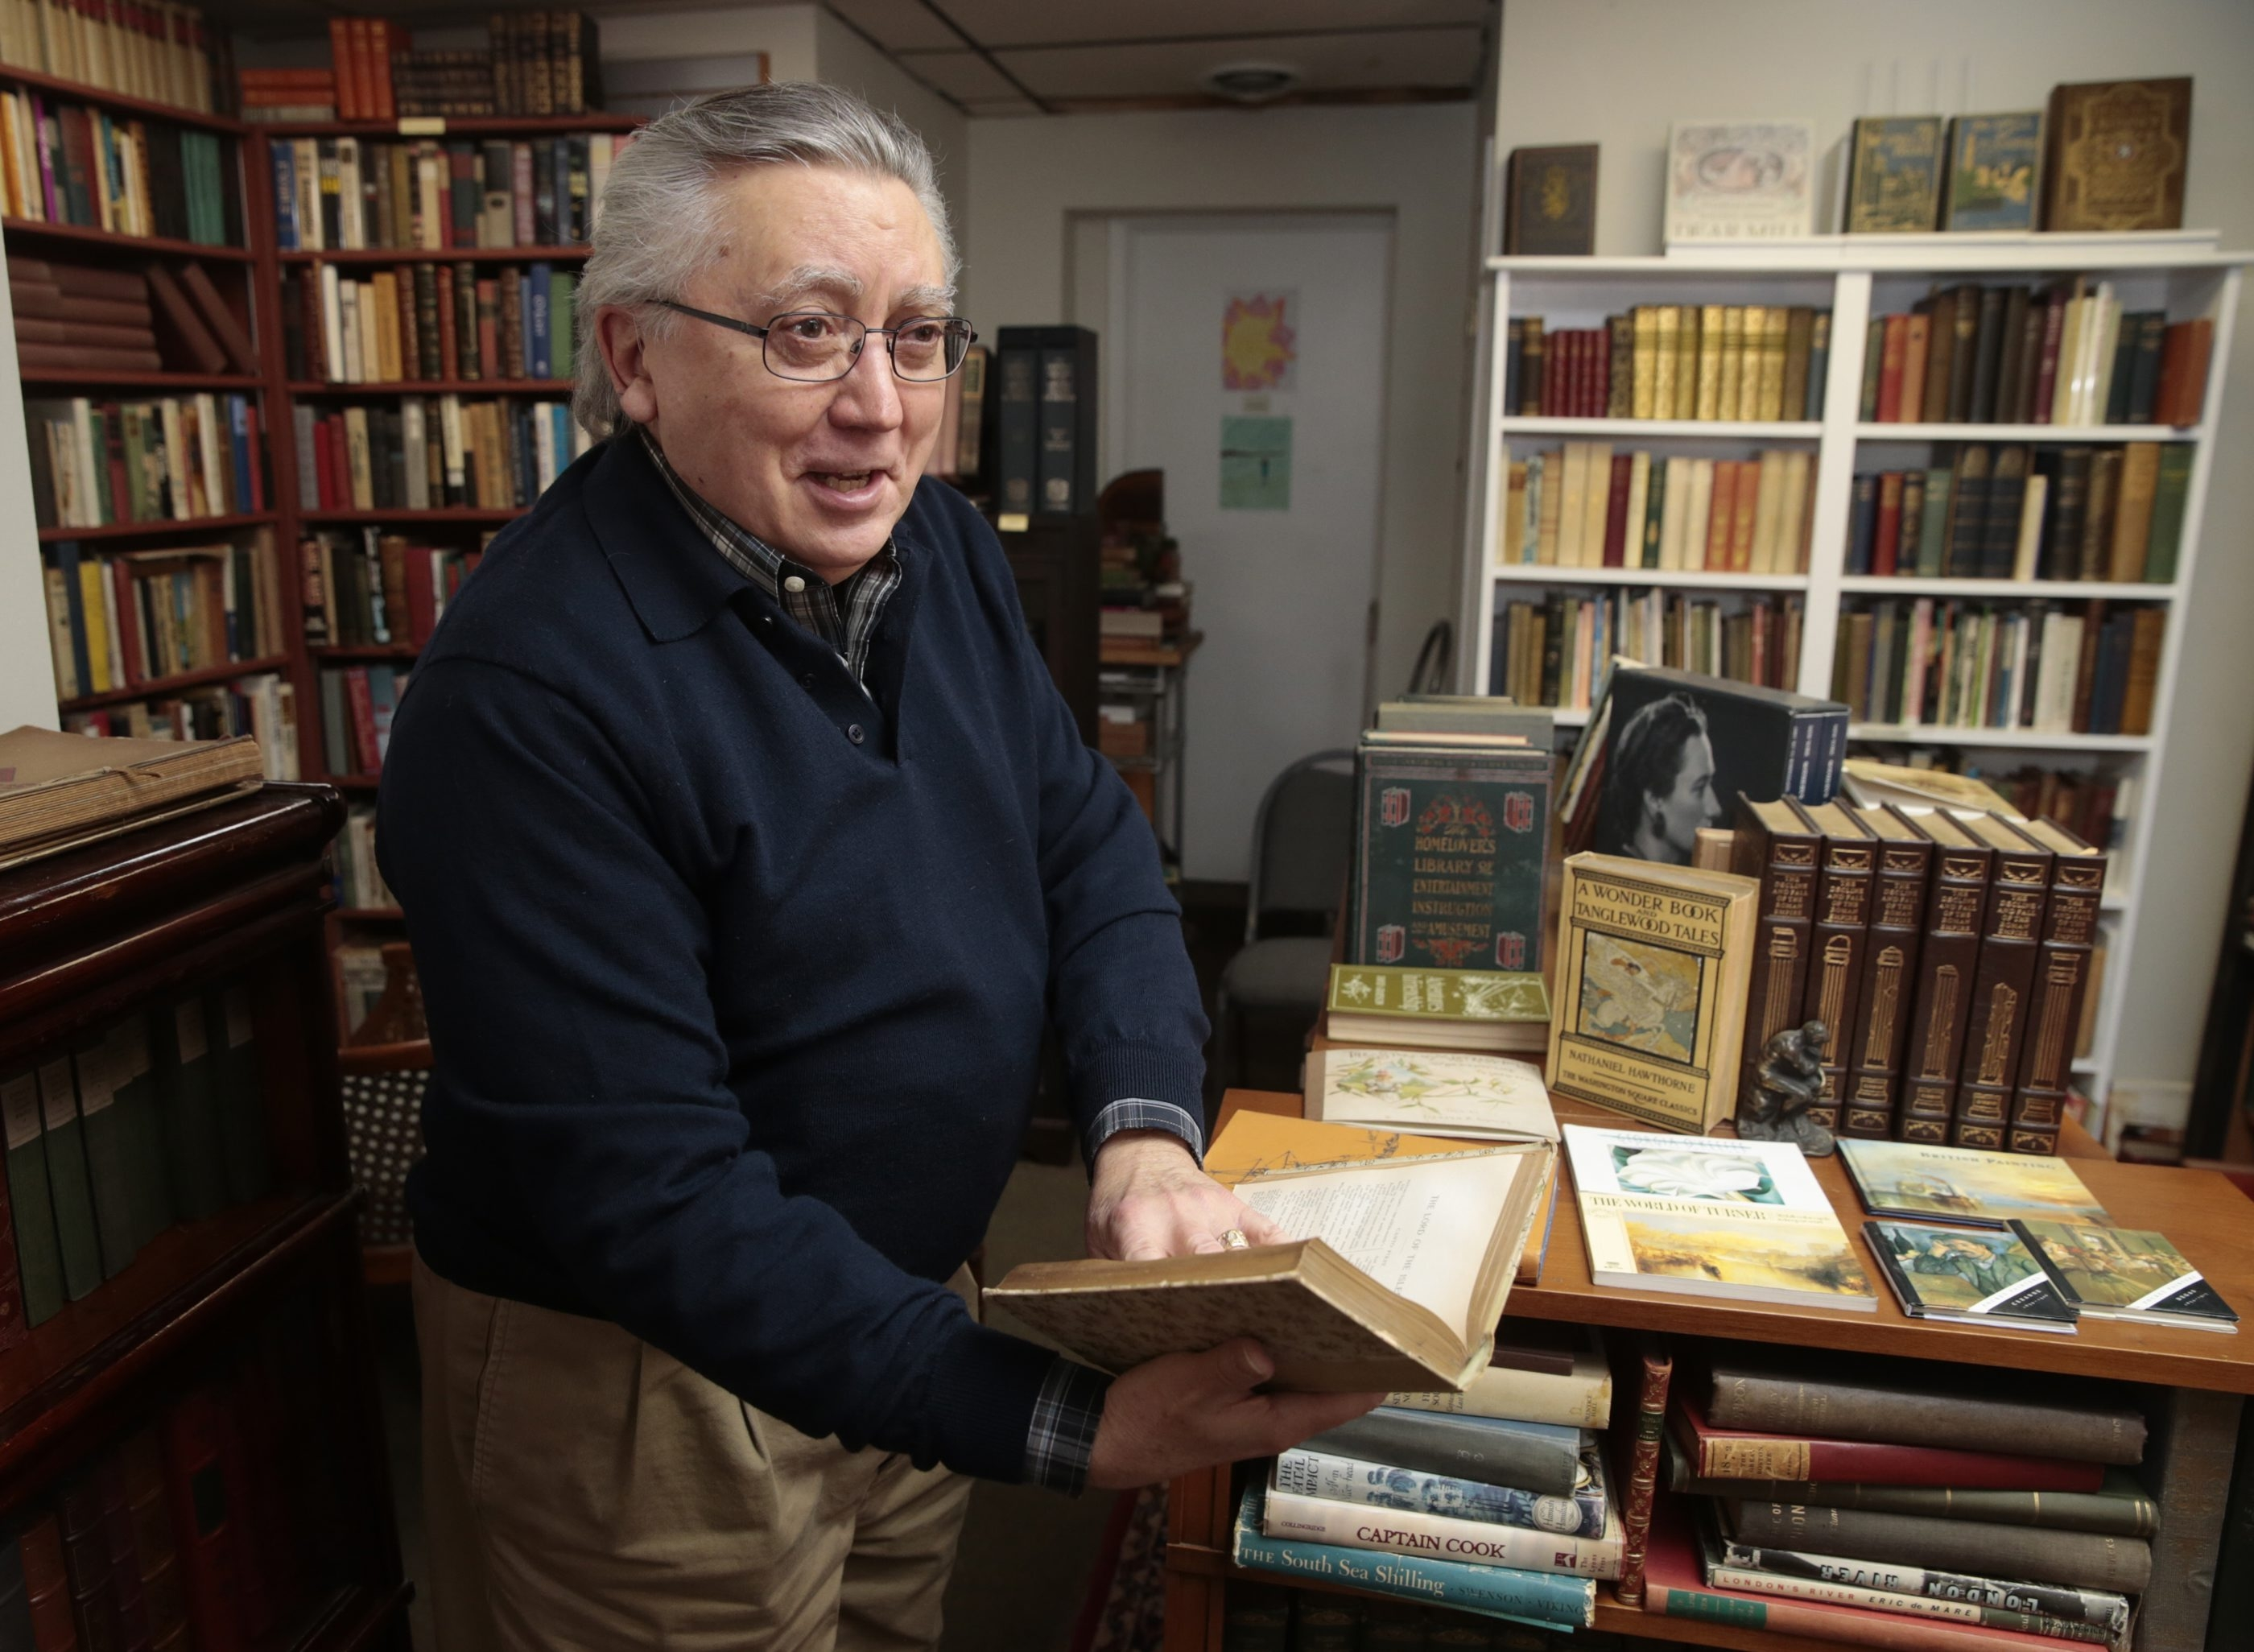 Robert M. Giannetti, a local poet and collector of books, is closing his store, Bob's Olde Books, next month after more than seven years in business on Center Street in Lewiston.